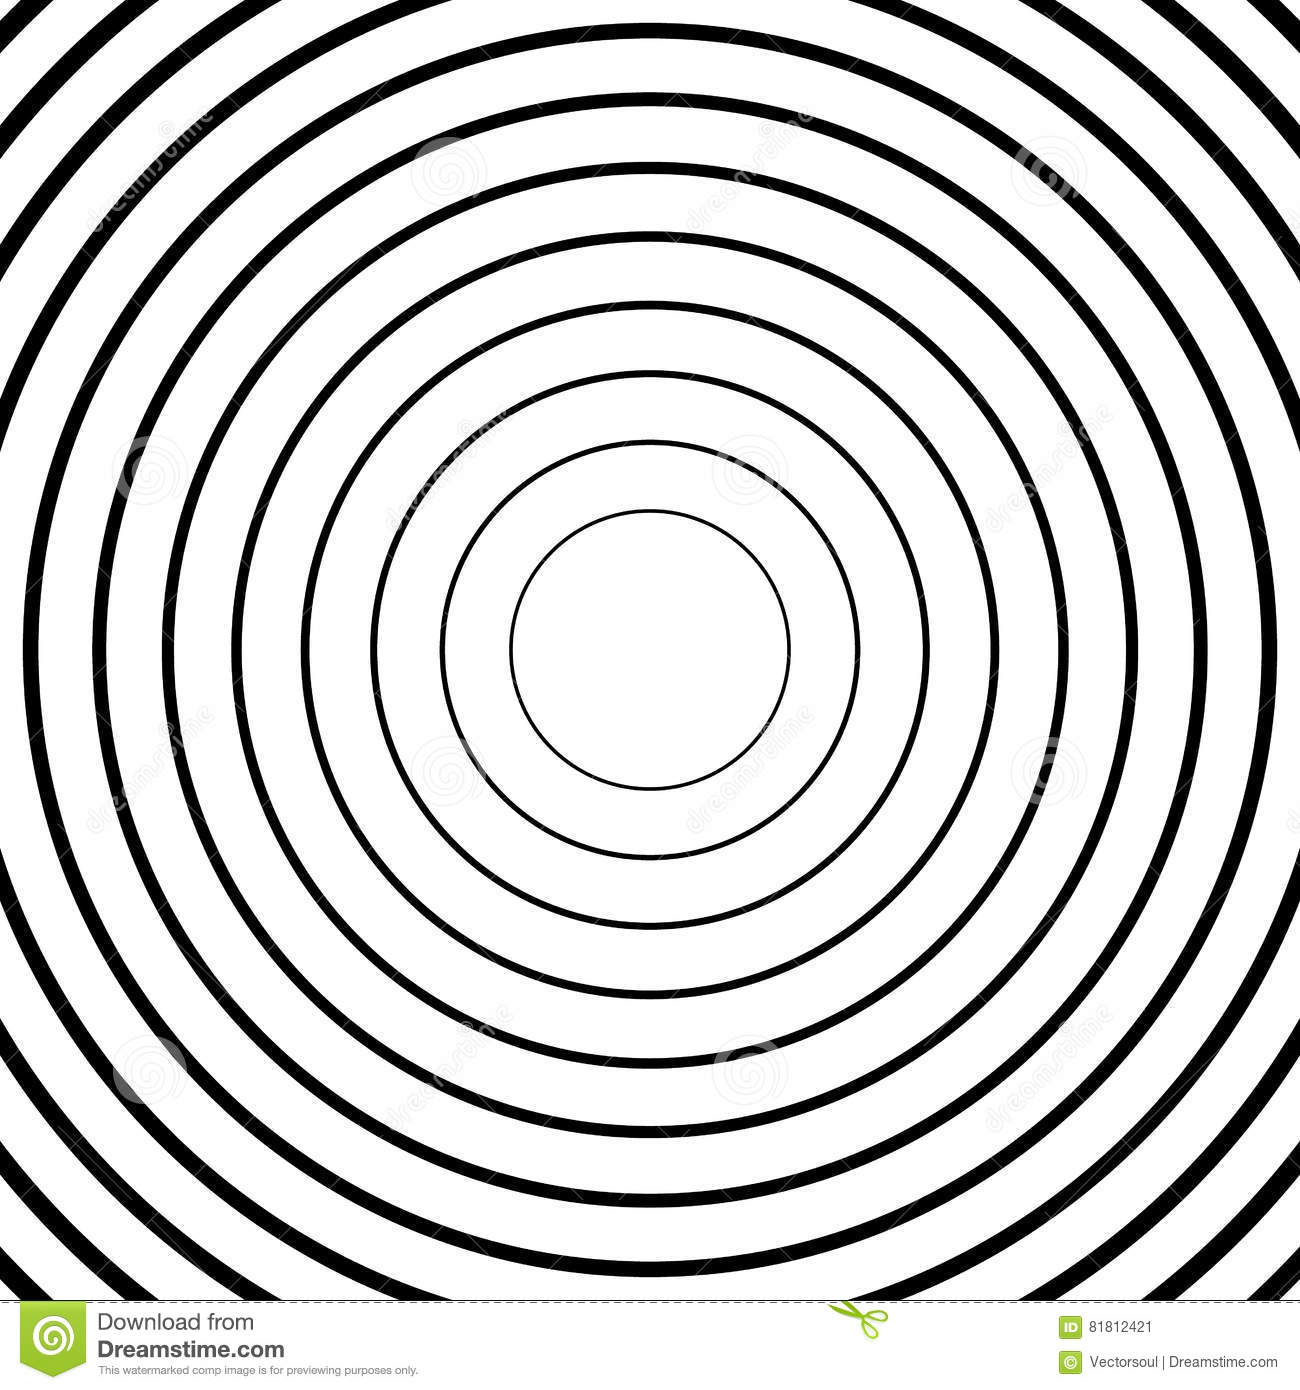 Concentric Circles, Radial Lines Patterns  Monochrome